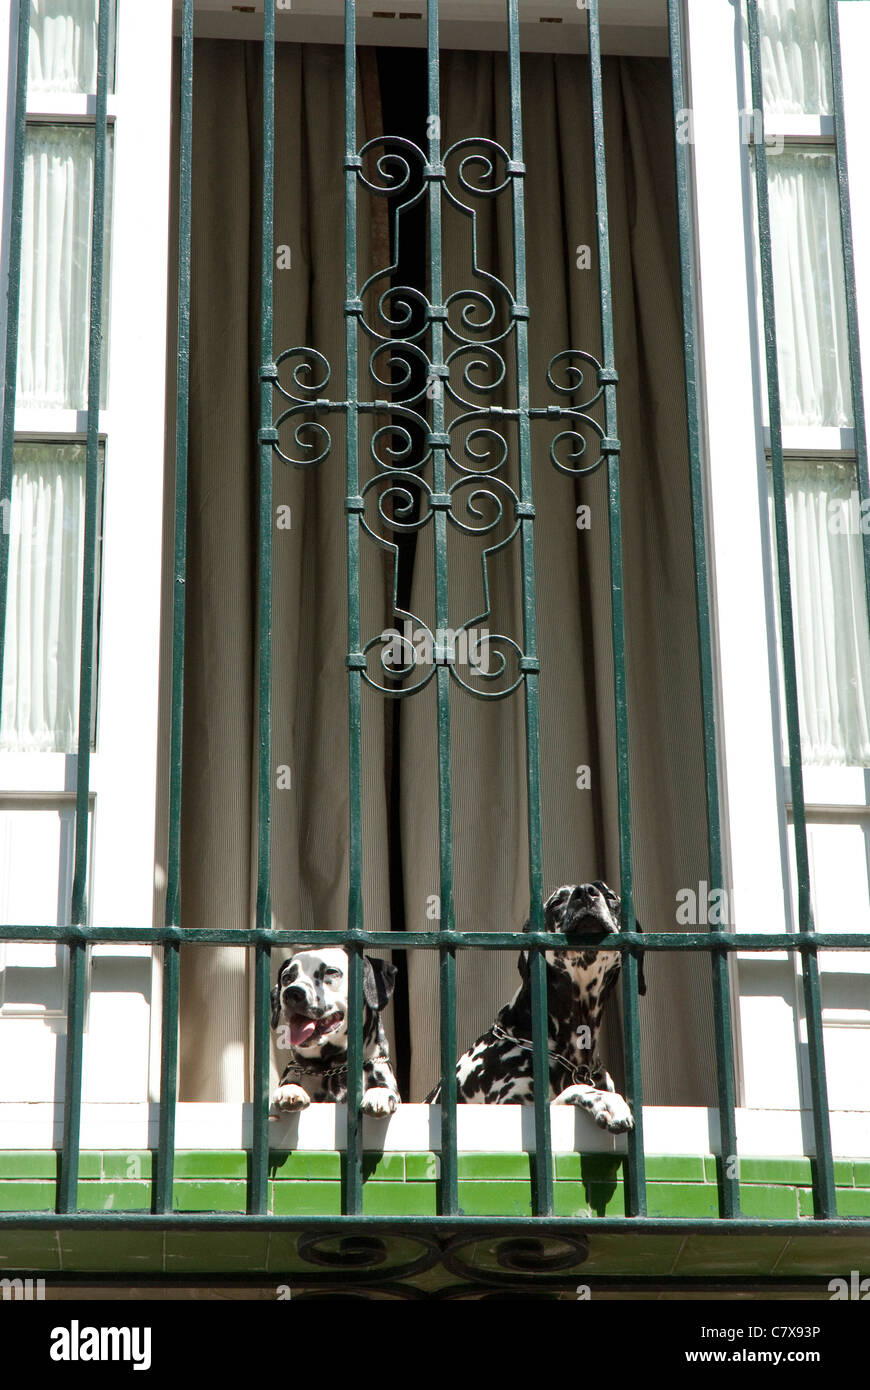 Two Dalmatian Dogs on a Balcony - Stock Image